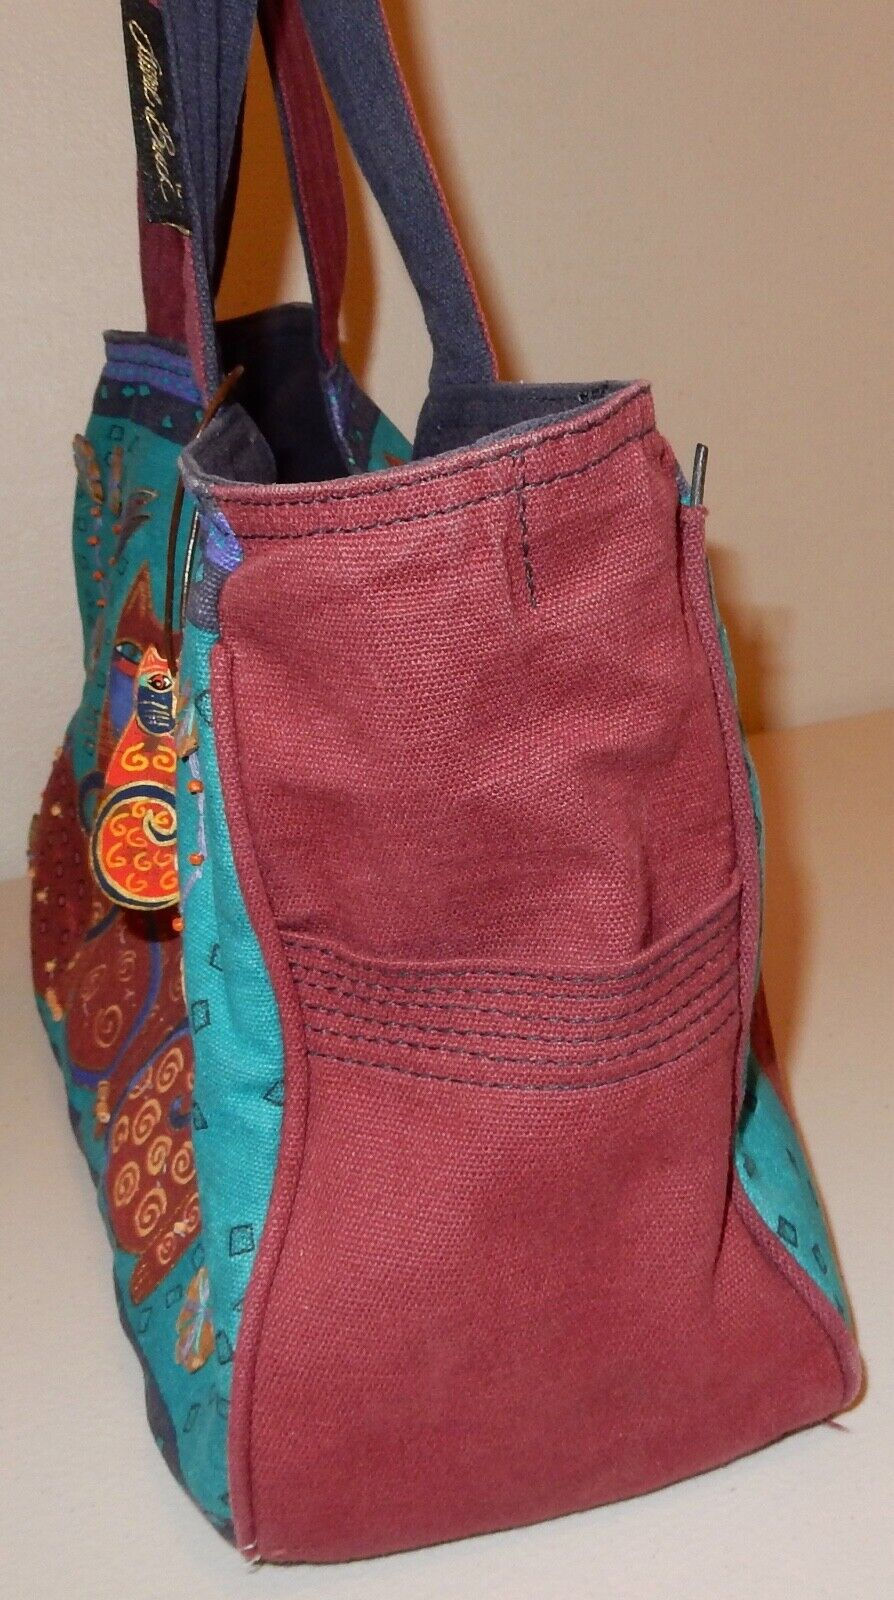 Laurel Burch Cat Tote Bag & Pouch Used - image 5